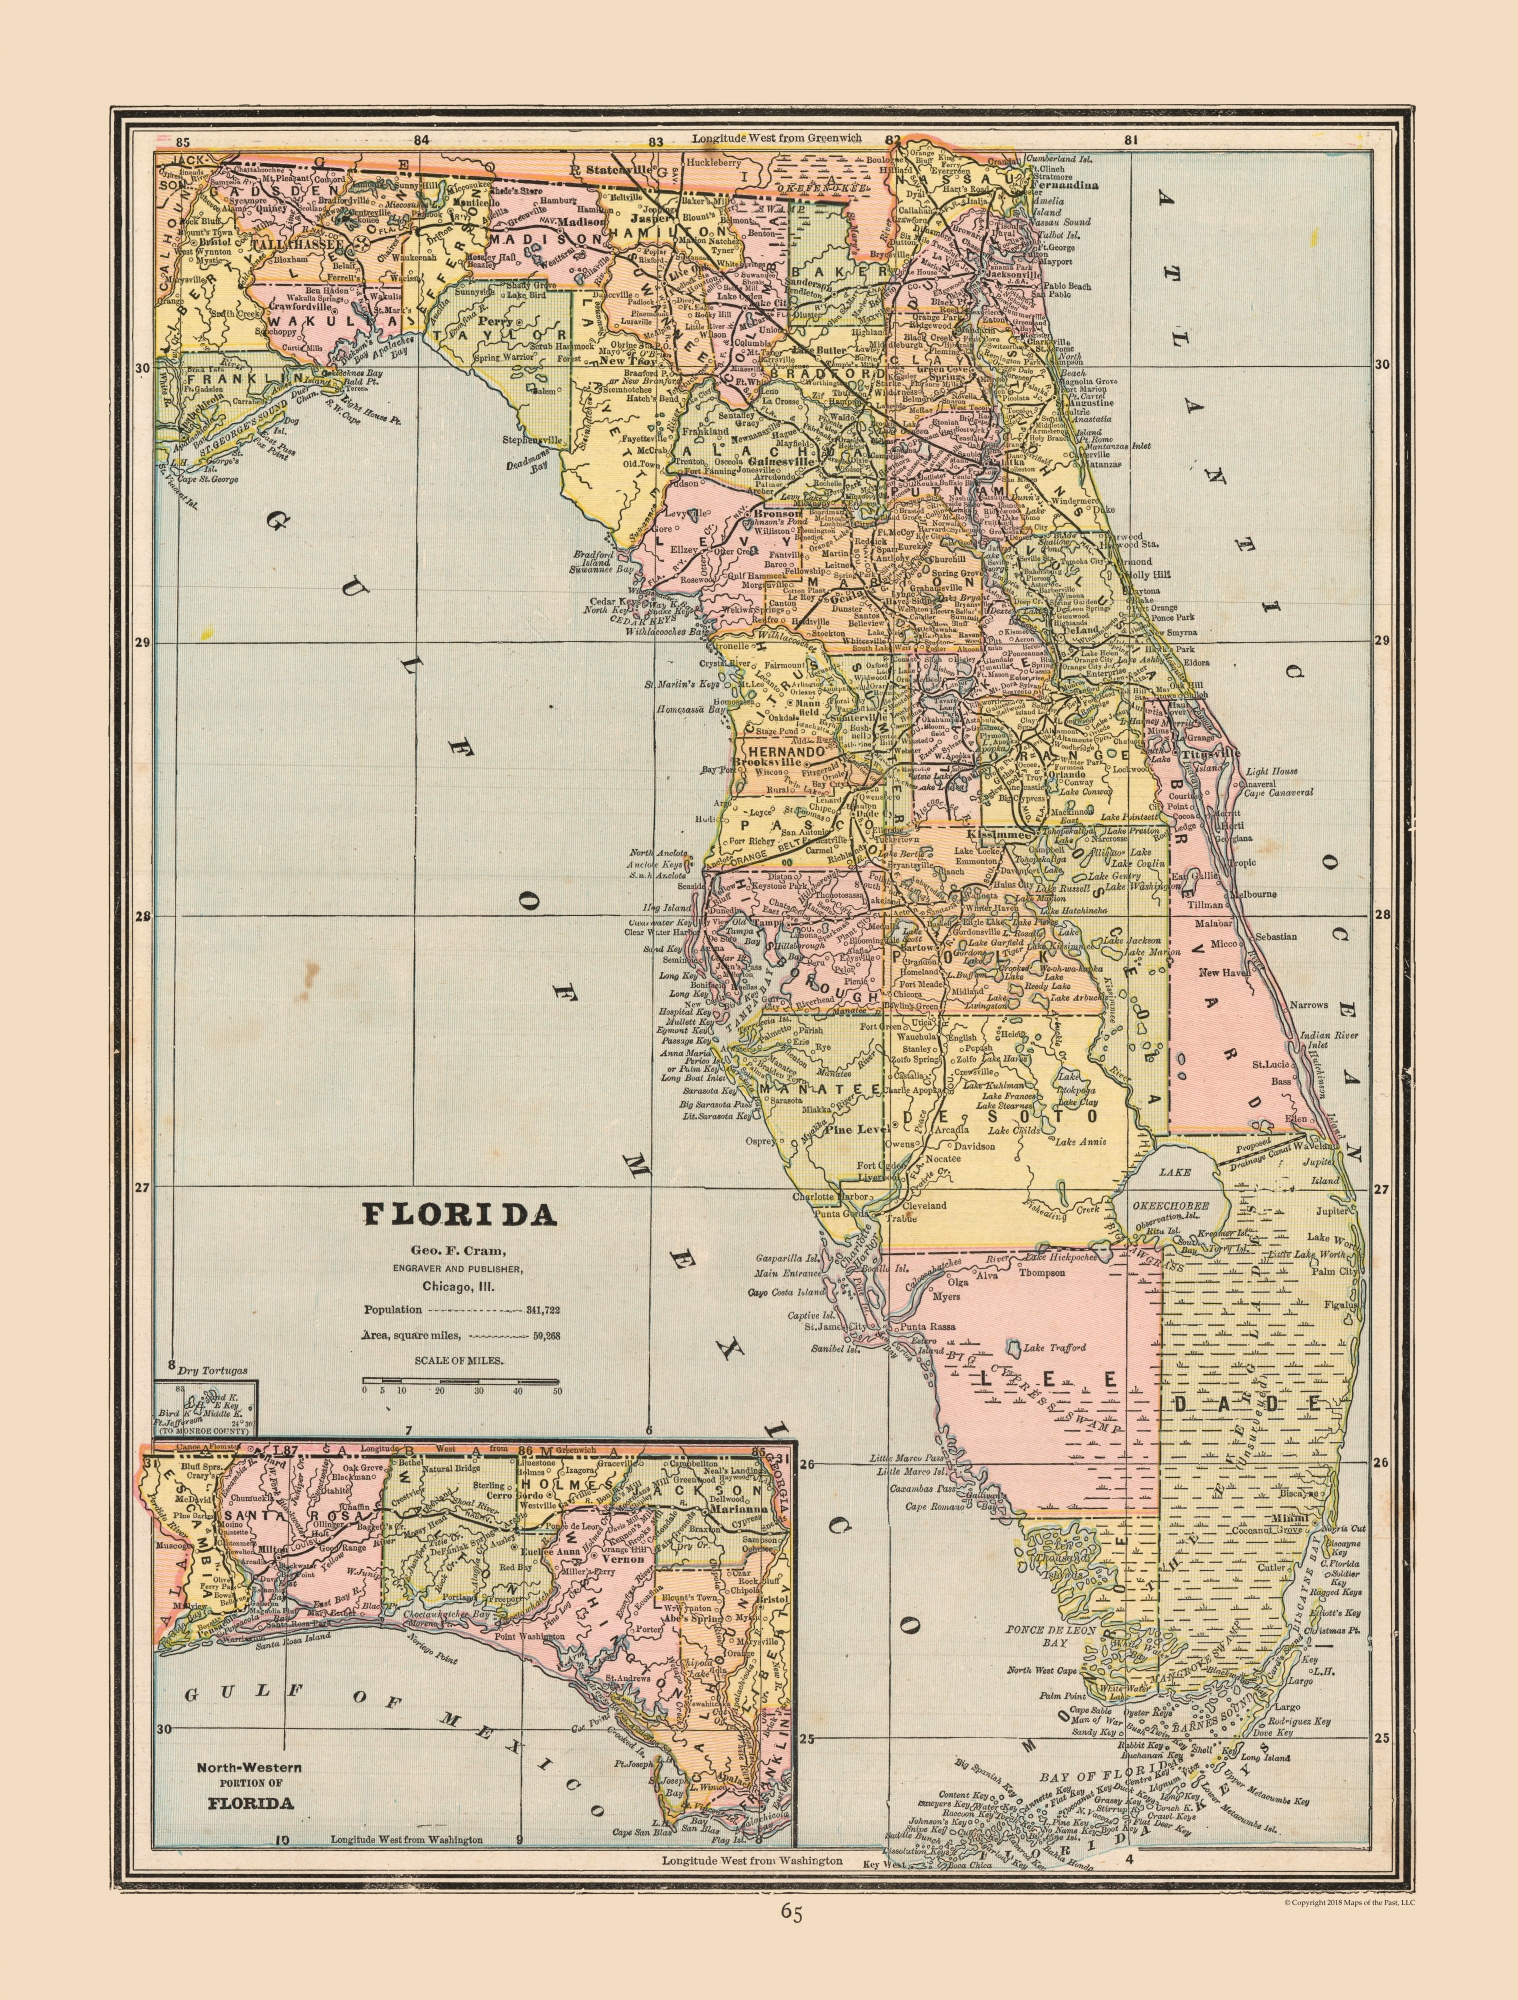 Old State Maps - Florida, United States - Cram's Atlas 1888 - 23 x on newport on us map, juneau on us map, martha's vineyard on us map, madison on us map, mount vernon on us map, portsmouth on us map, naples on us map, panama city on us map, north platte on us map, roanoke on us map, walt disney world on us map, largo on us map, cancun on us map, columbia on us map, grand canyon national park on us map, orange county on us map, cabo san lucas on us map, sioux falls on us map, hudson on us map, saint augustine on us map,